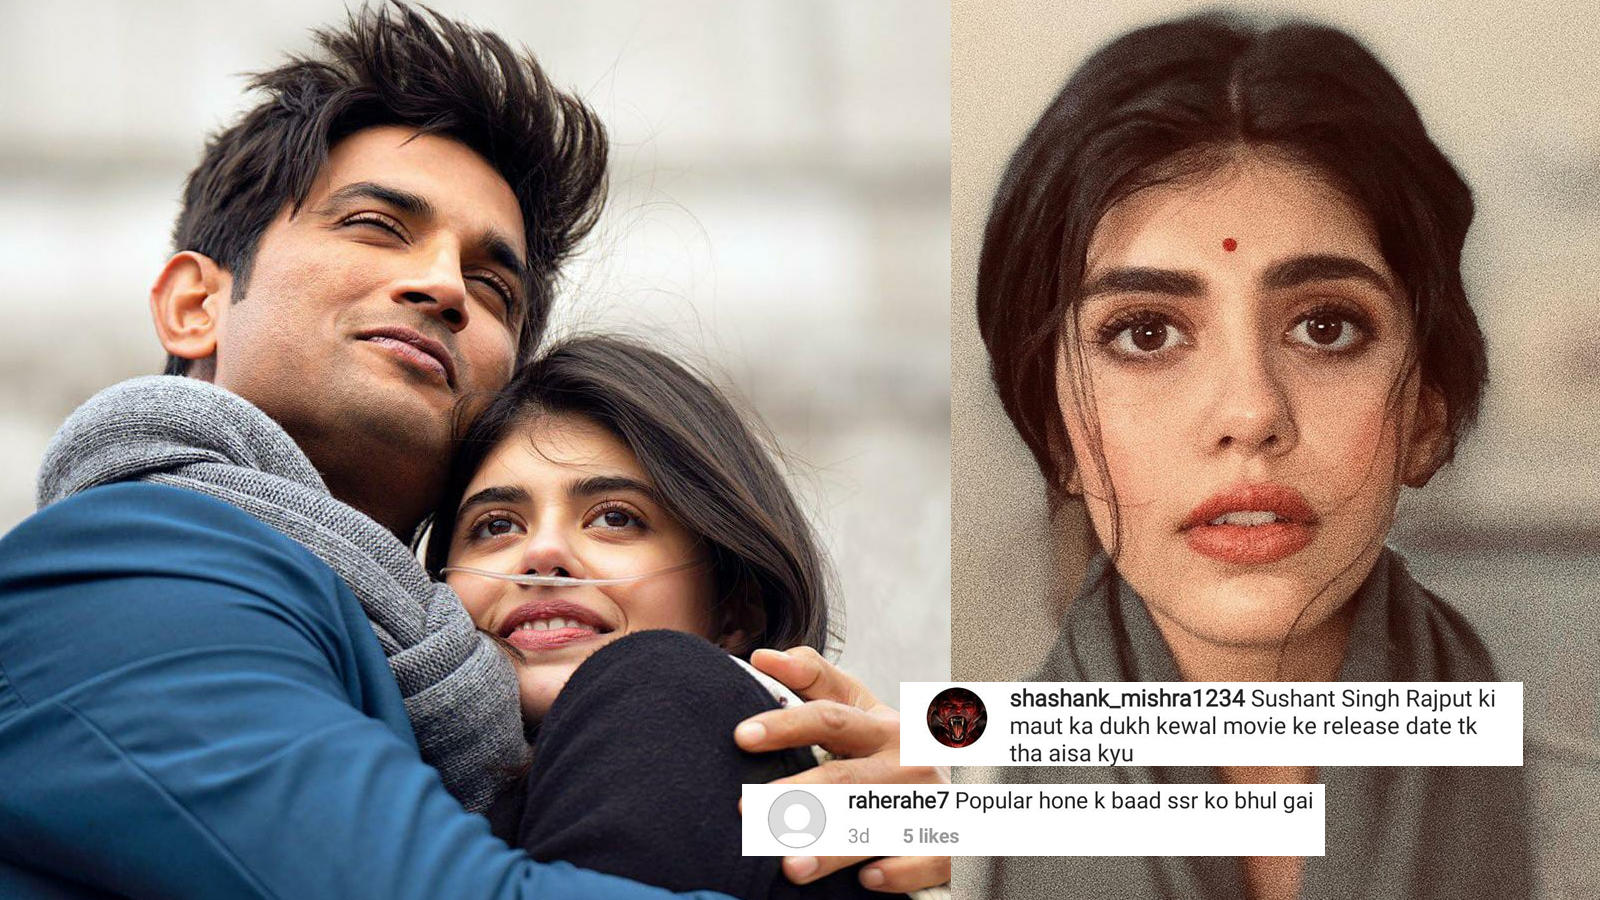 sanjana-sanghi-slammed-by-netizens-for-completely-forgetting-sushant-singh-rajput-after-movies-release